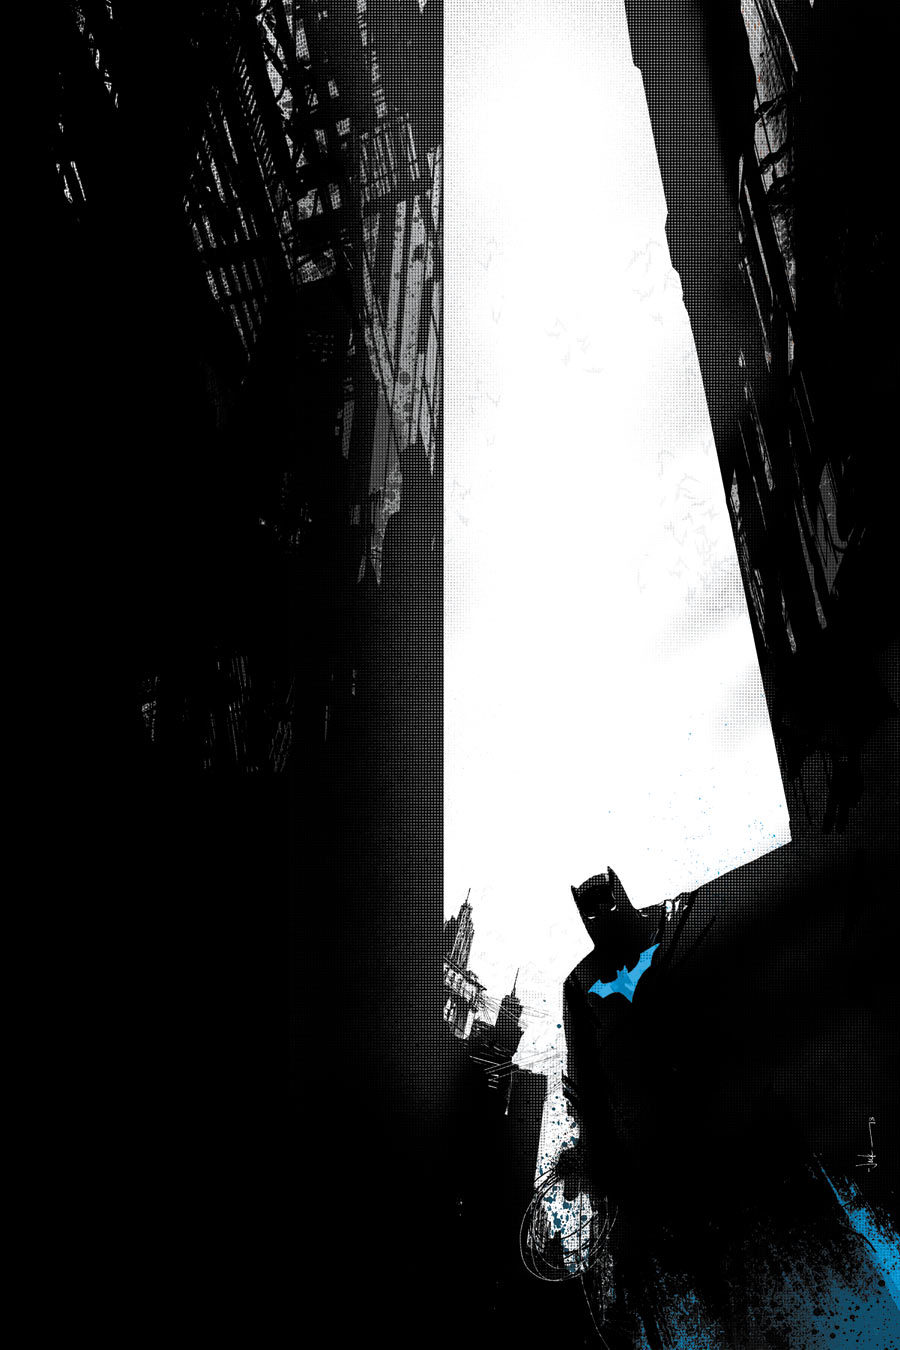 DC comics for July 2013: this is the cover for Batman Annual #2, drawn by Jock, which hides the focus within the shadows.